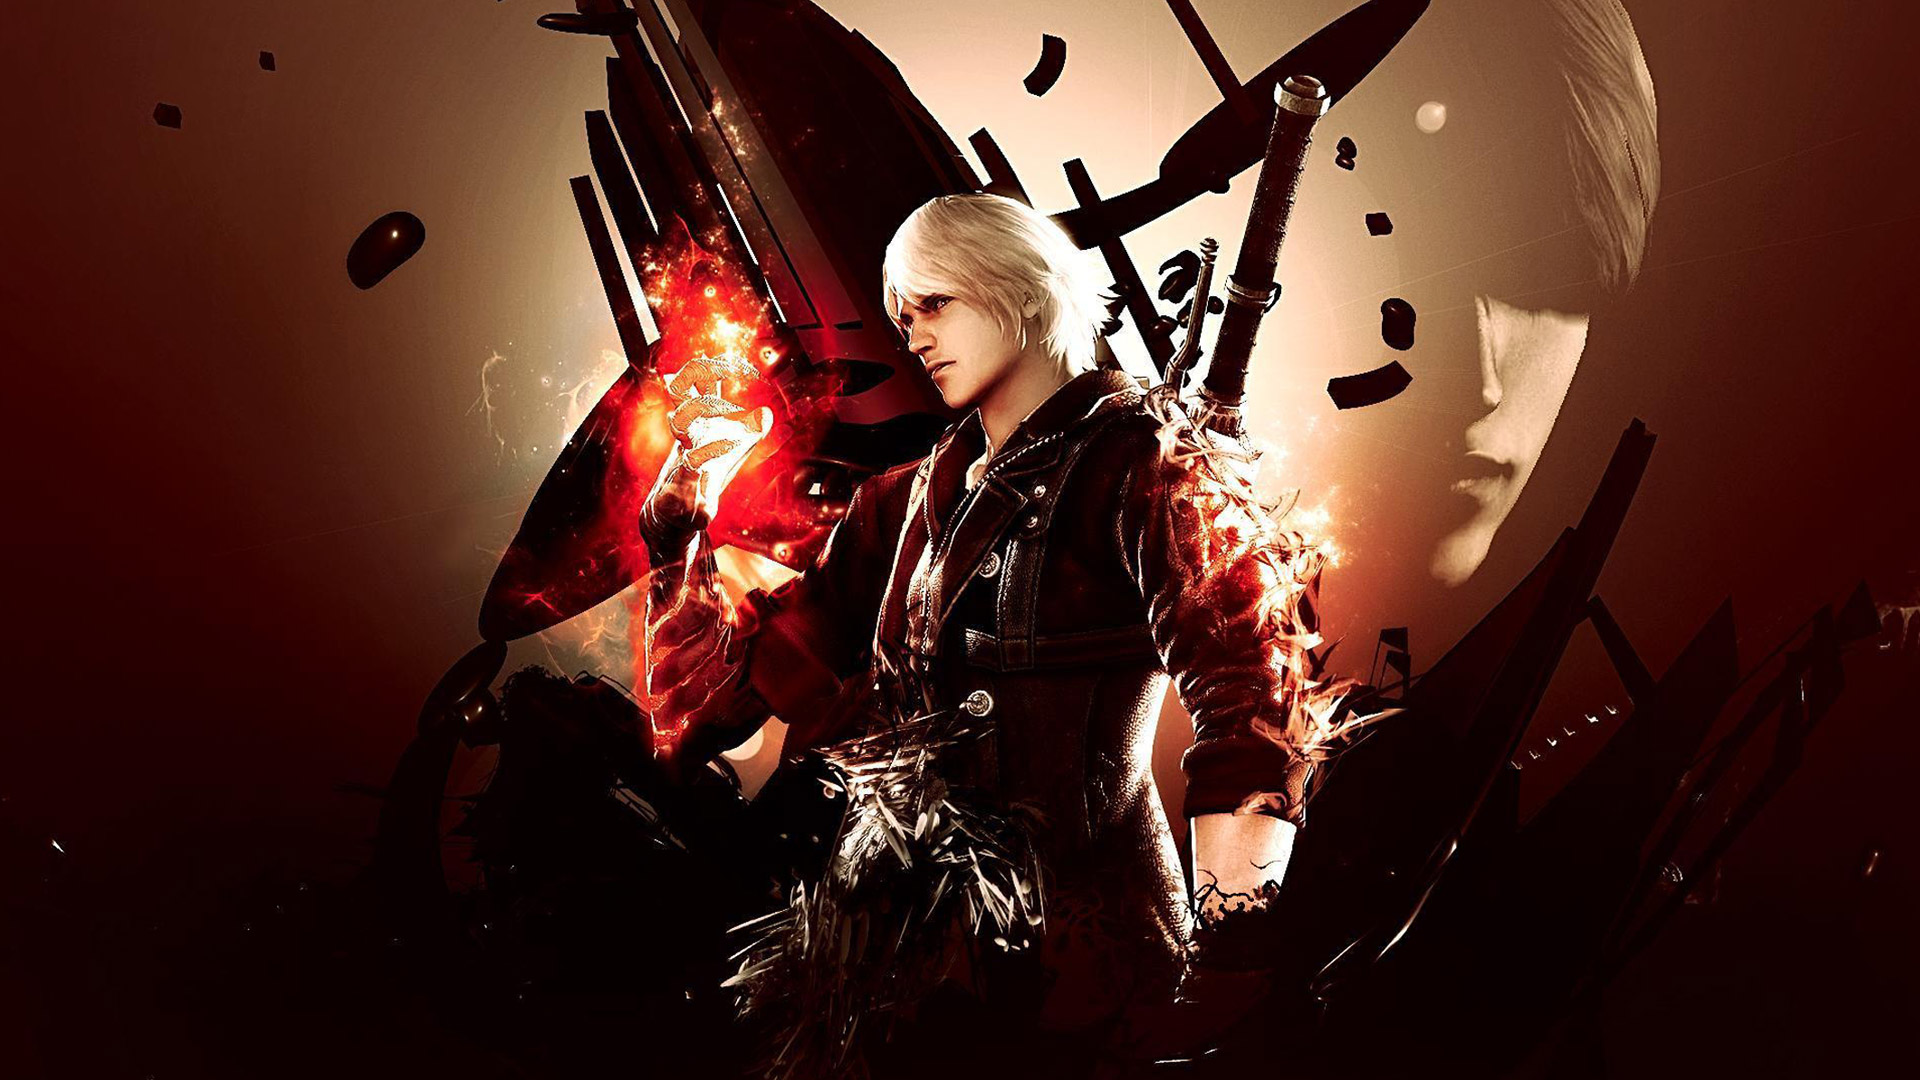 devil may cry 4 wallpaper 3